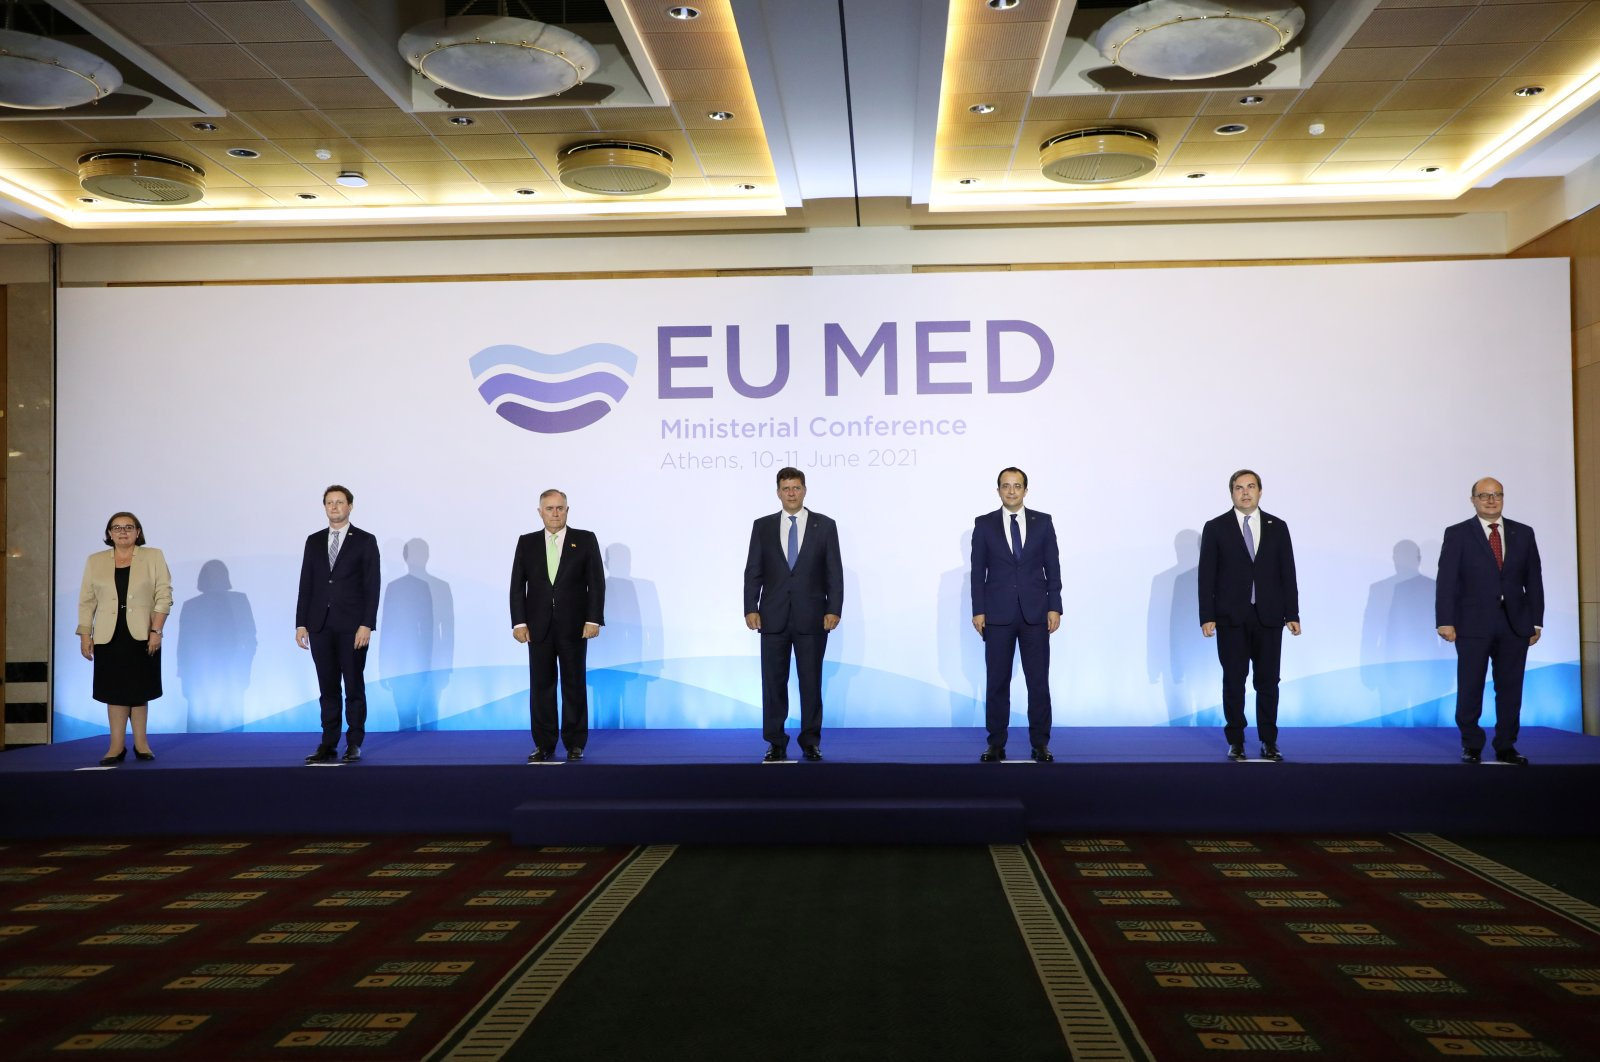 Officials pose for a family photo during an EU MED (MED-7) Ministerial Conference meeting, in Athens, Greece, June 11, 2021. (REUTERS Photo)